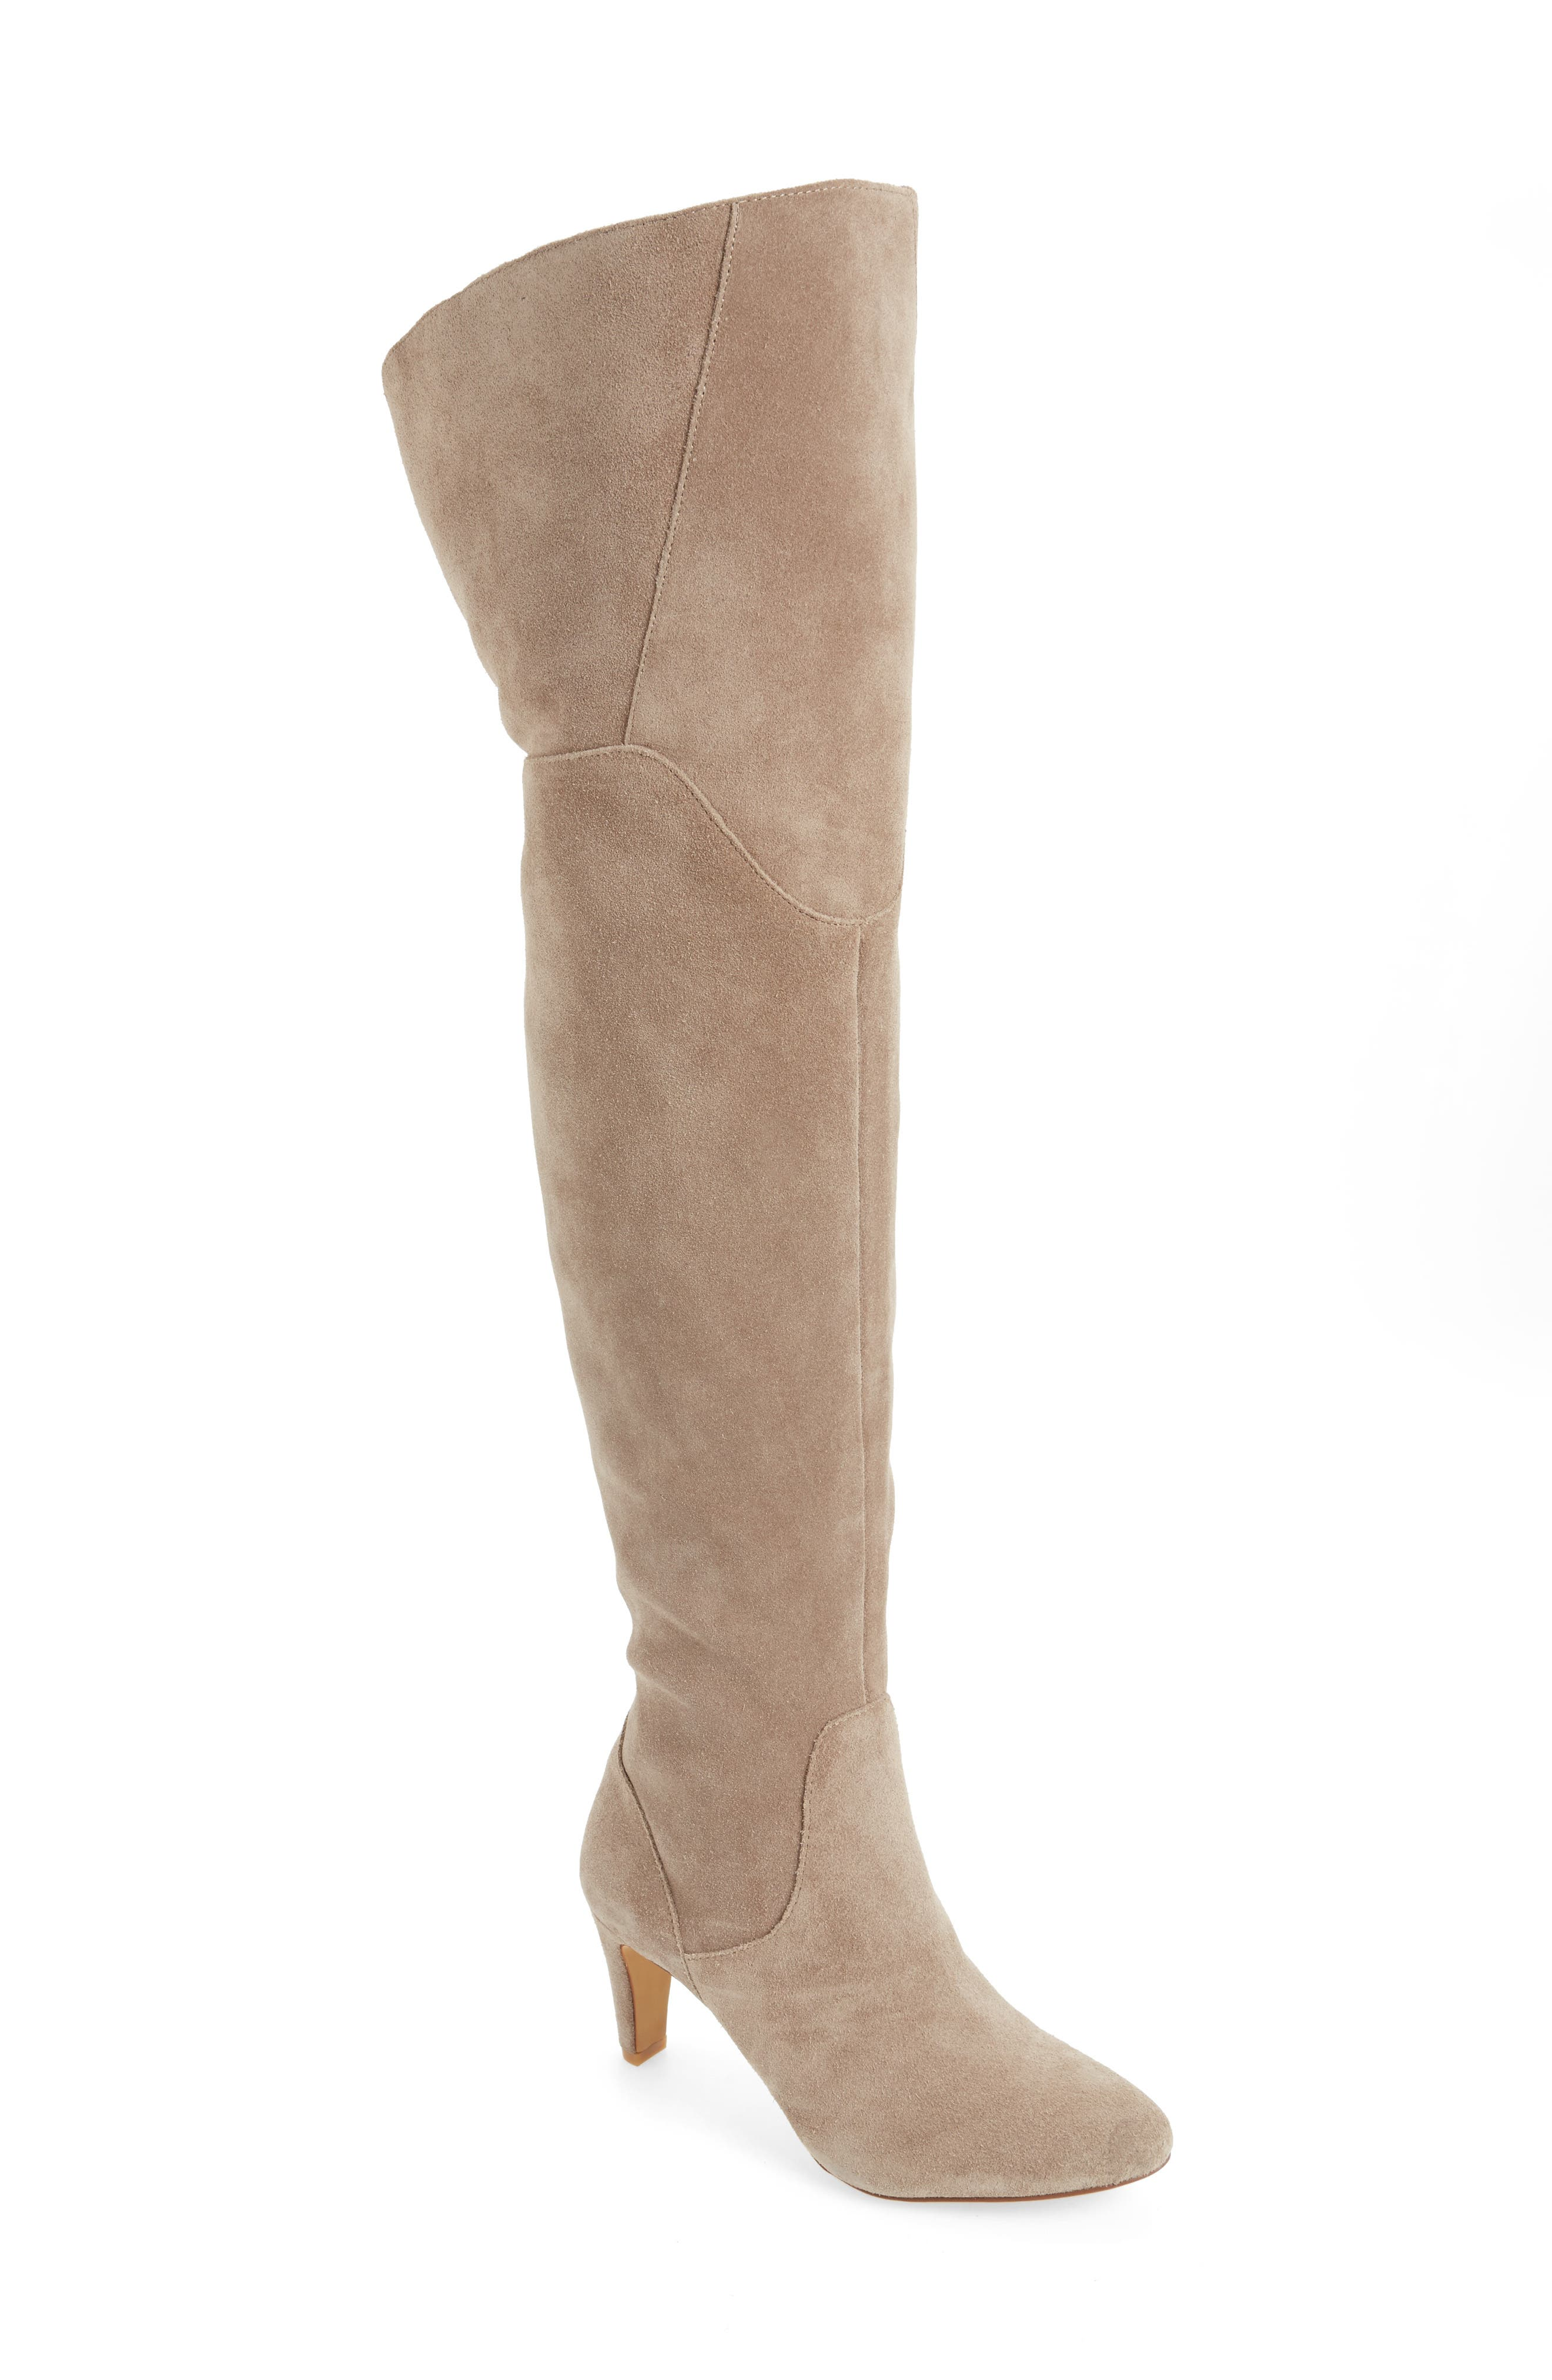 Alternate Image 1 Selected - Vince Camuto Armaceli Over the Knee Boot (Women)